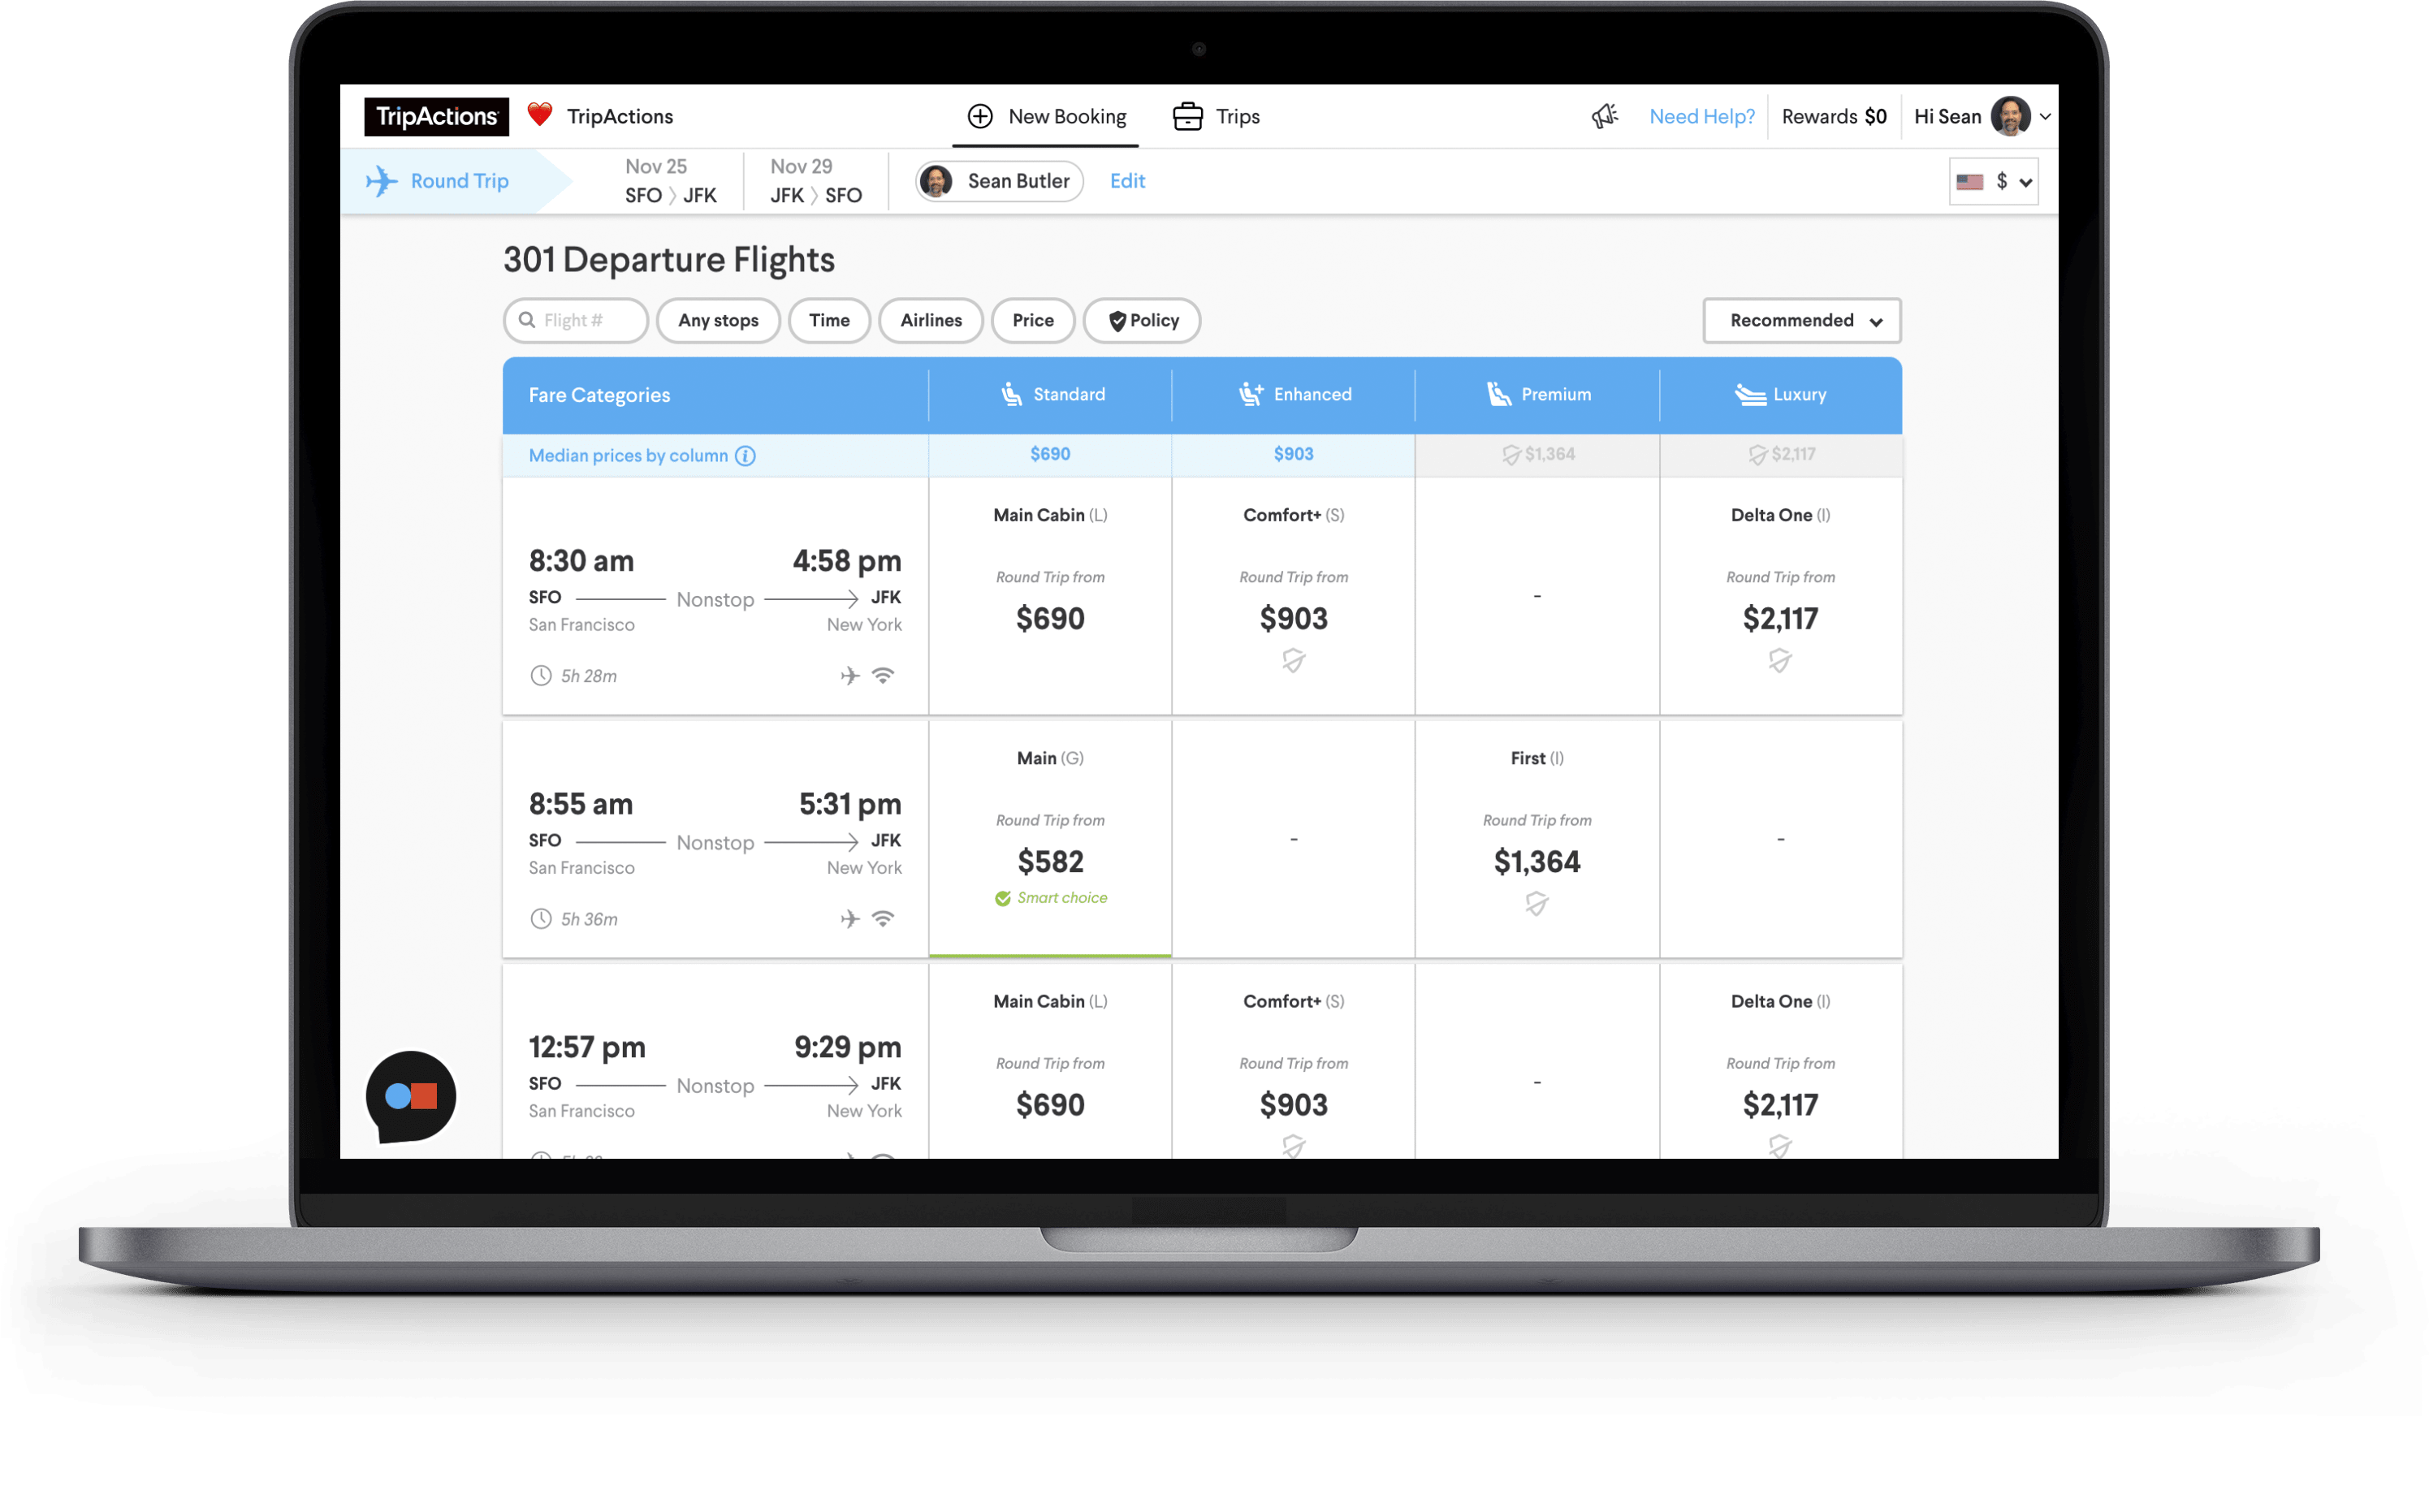 TripActions Product Screenshot - Flight search results